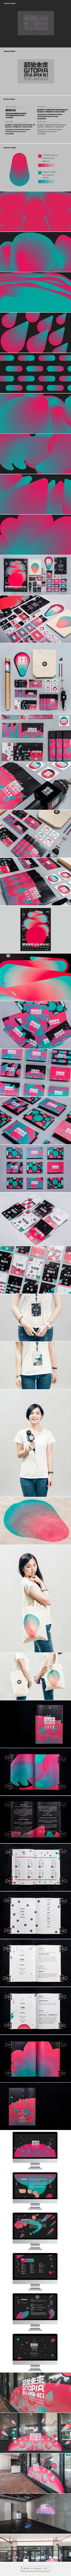 2016 OPEN HCI on Behance... - a grouped images picture - Pin Them All